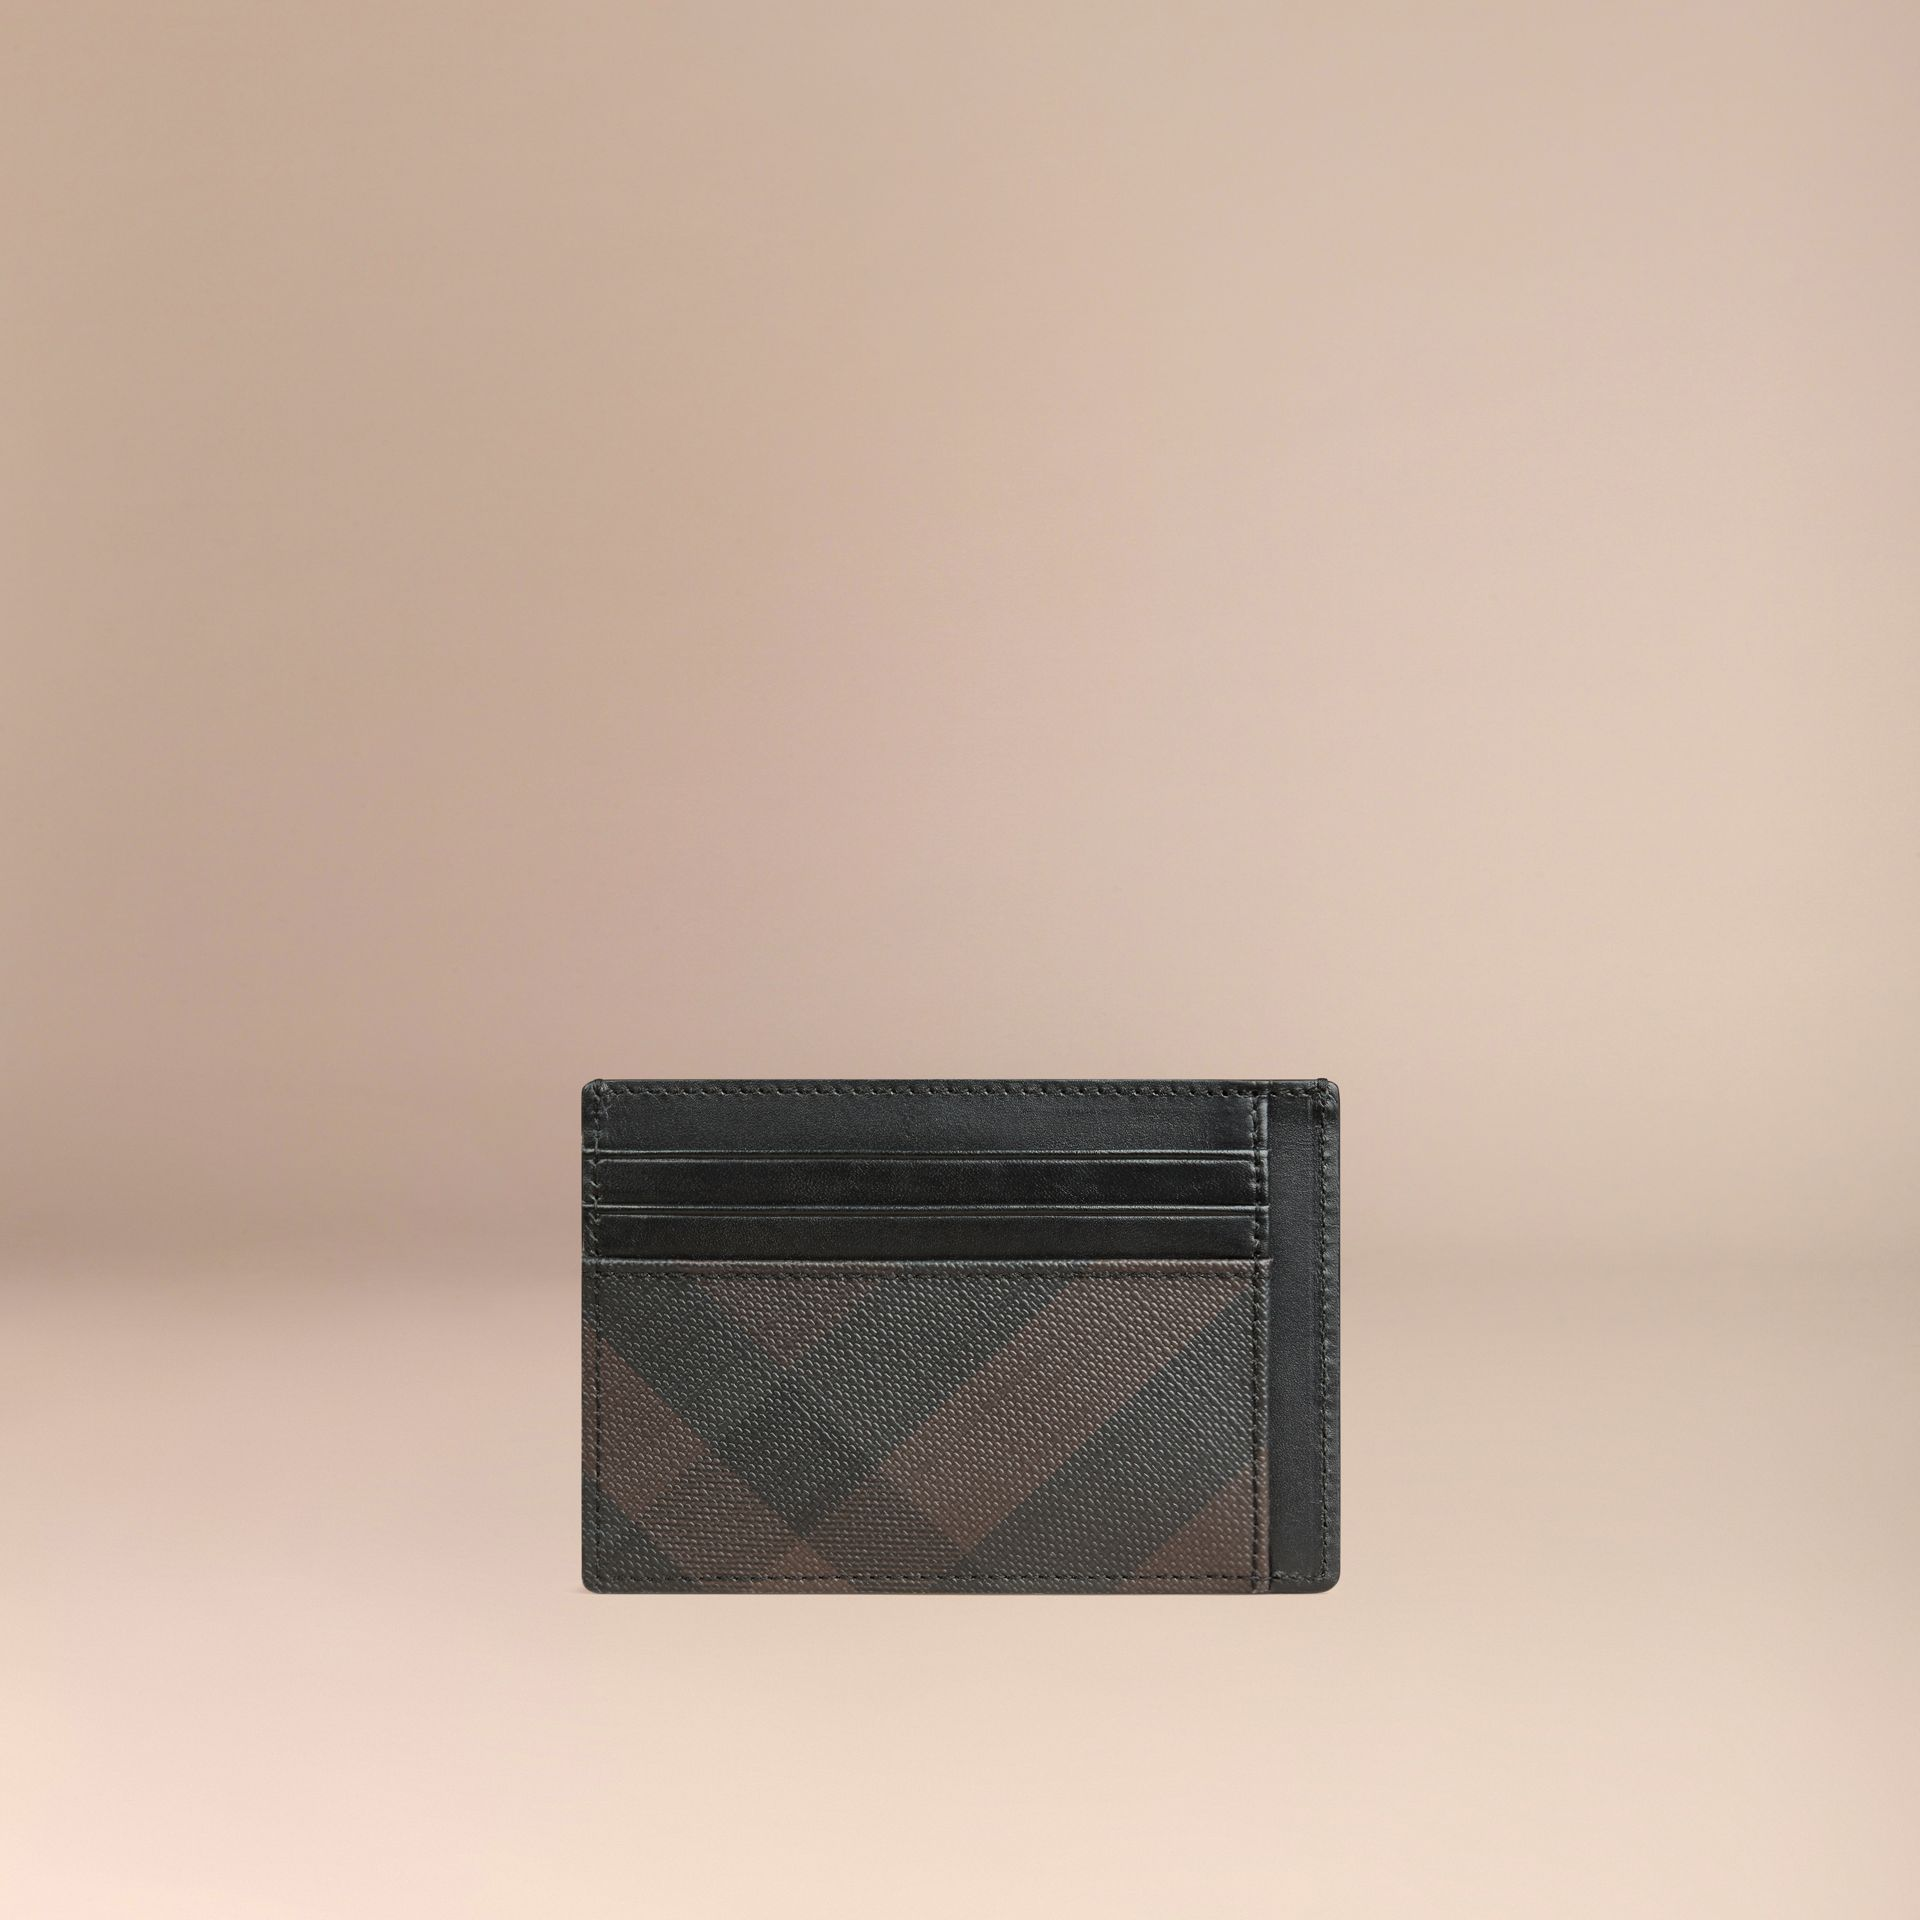 Porte-cartes Smoked check (Chocolat/noir) - Homme | Burberry - photo de la galerie 3